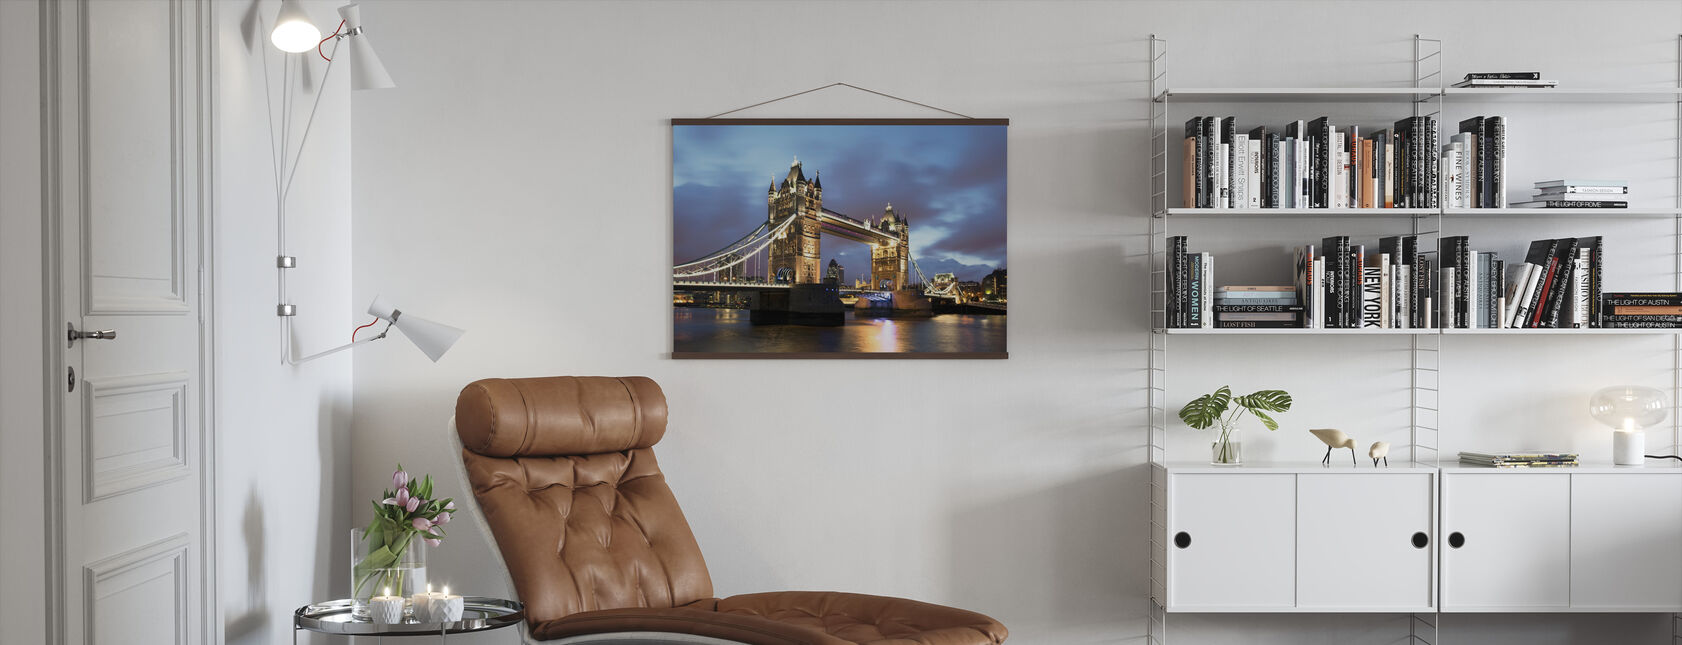 Iconic Bridge - Poster - Living Room